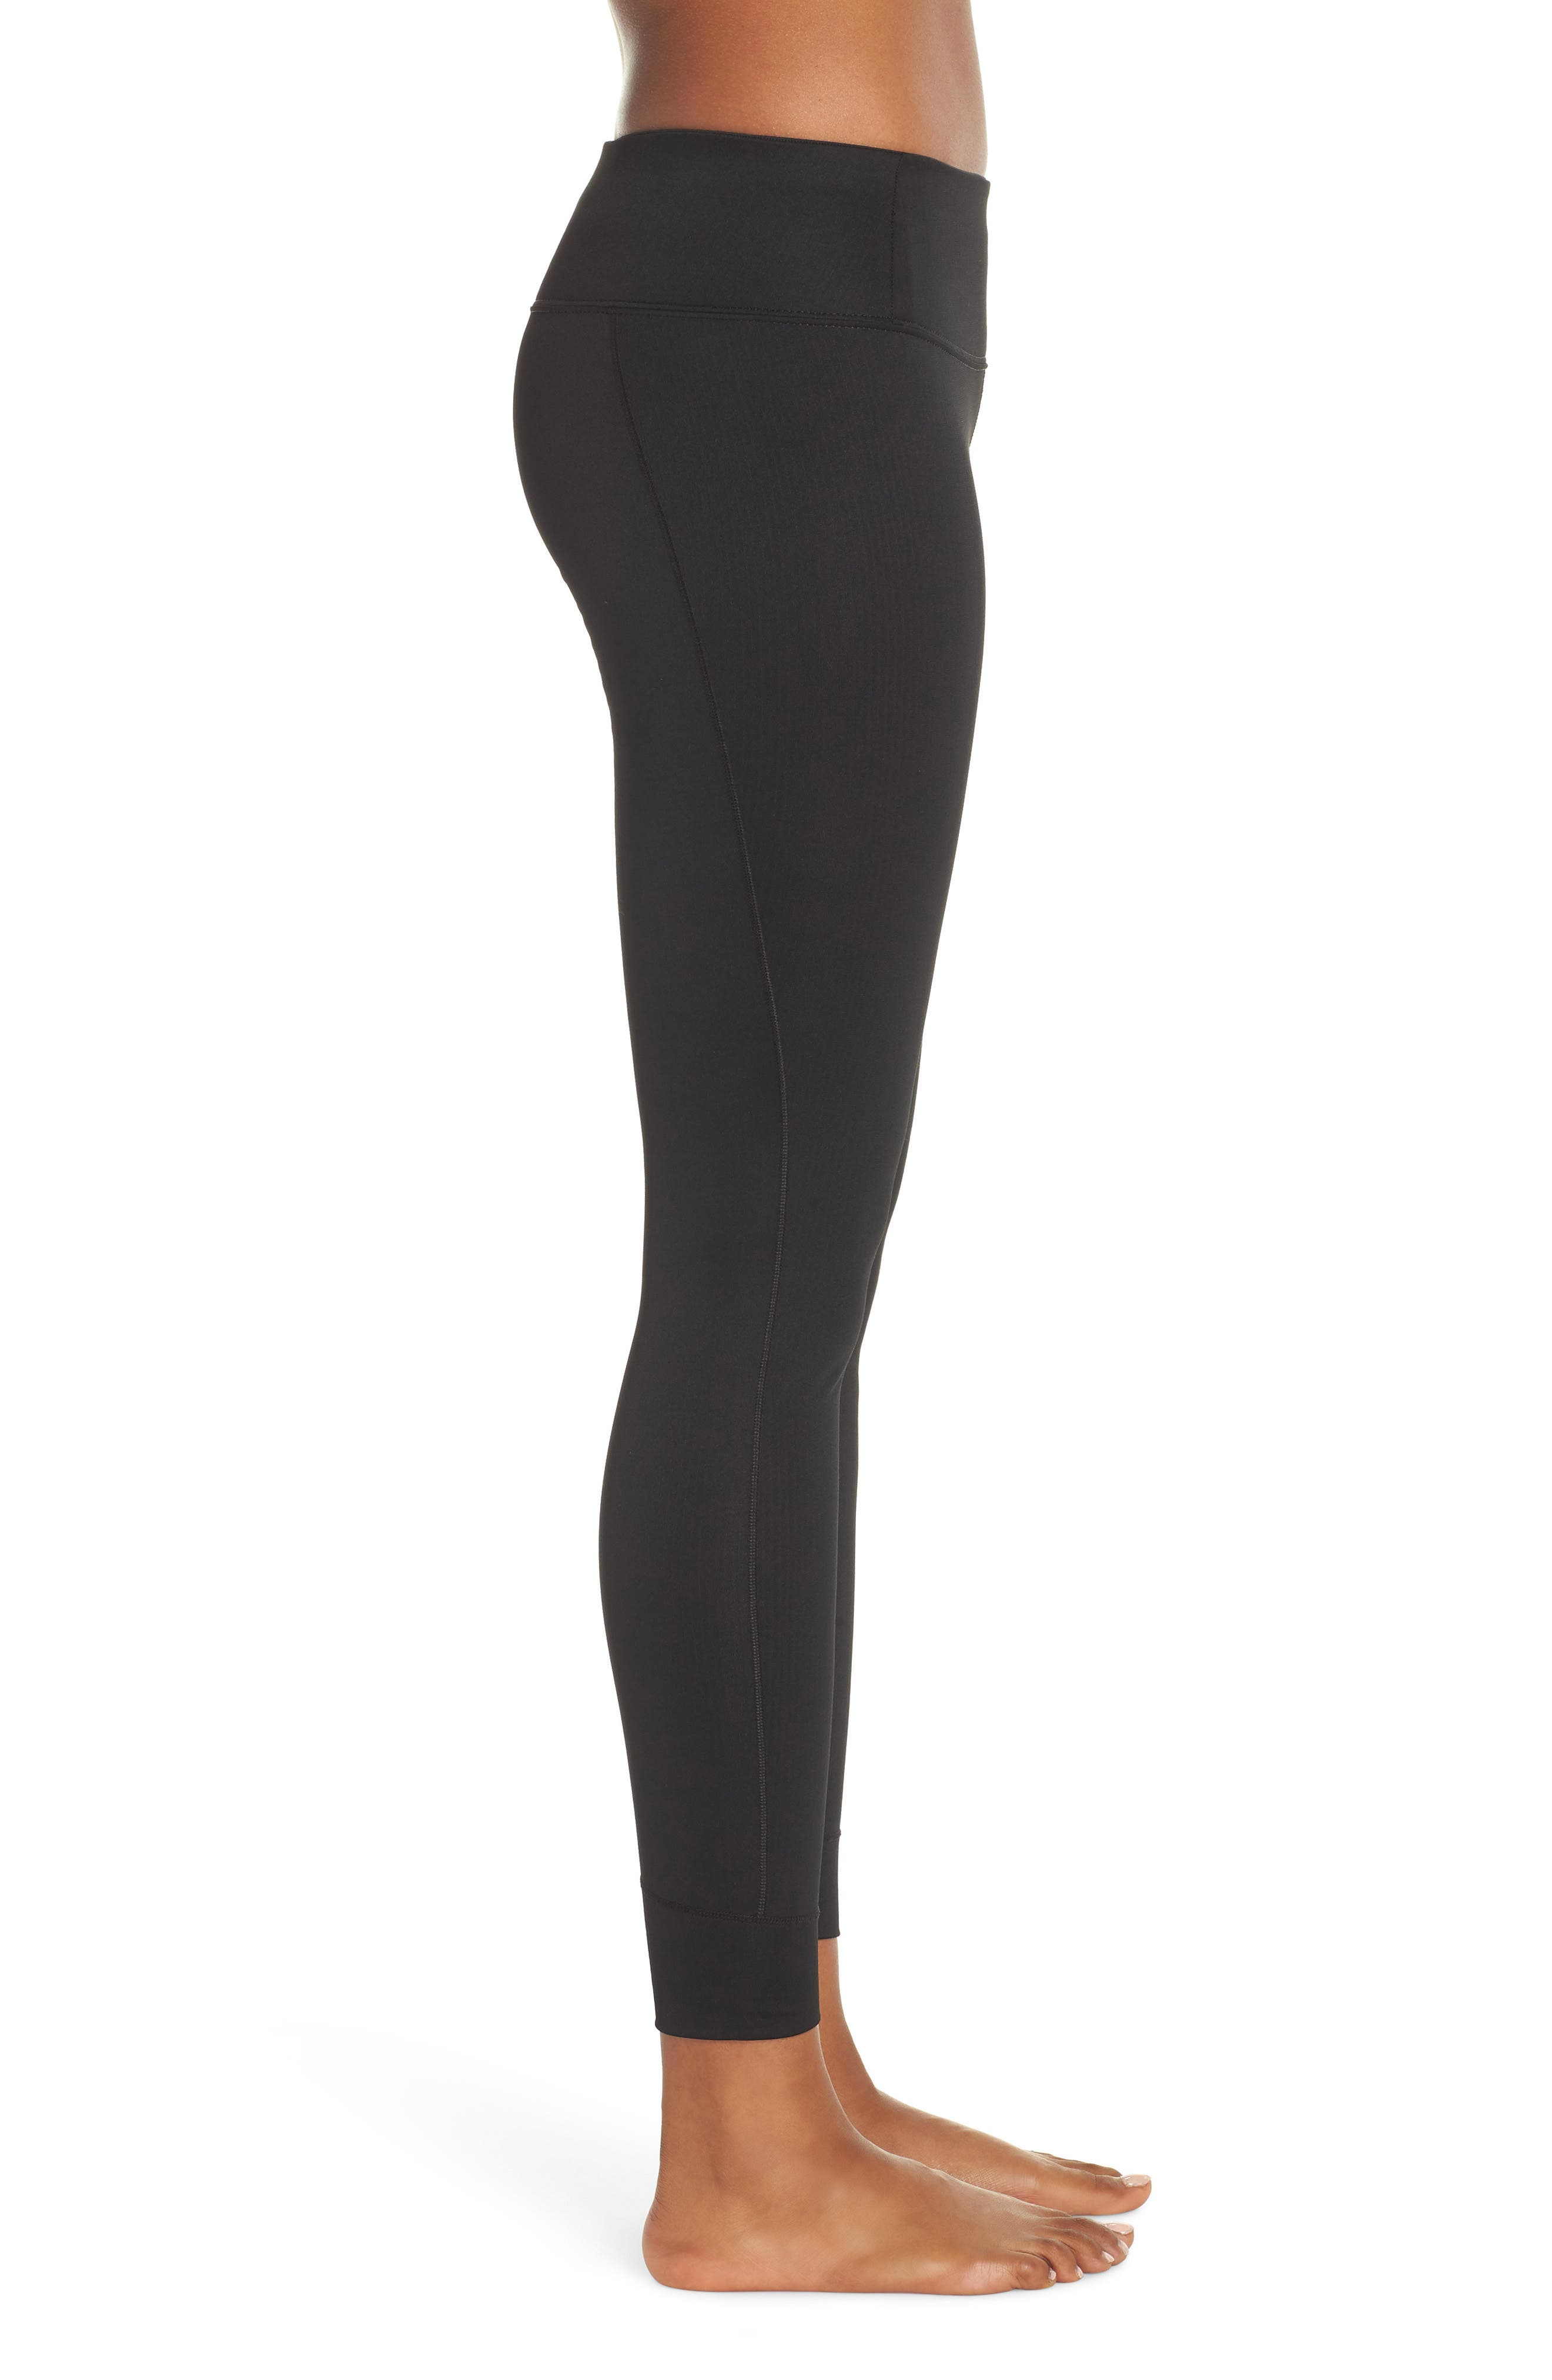 Capilene Midweight Base Layer Tights,                             Alternate thumbnail 3, color,                             BLACK